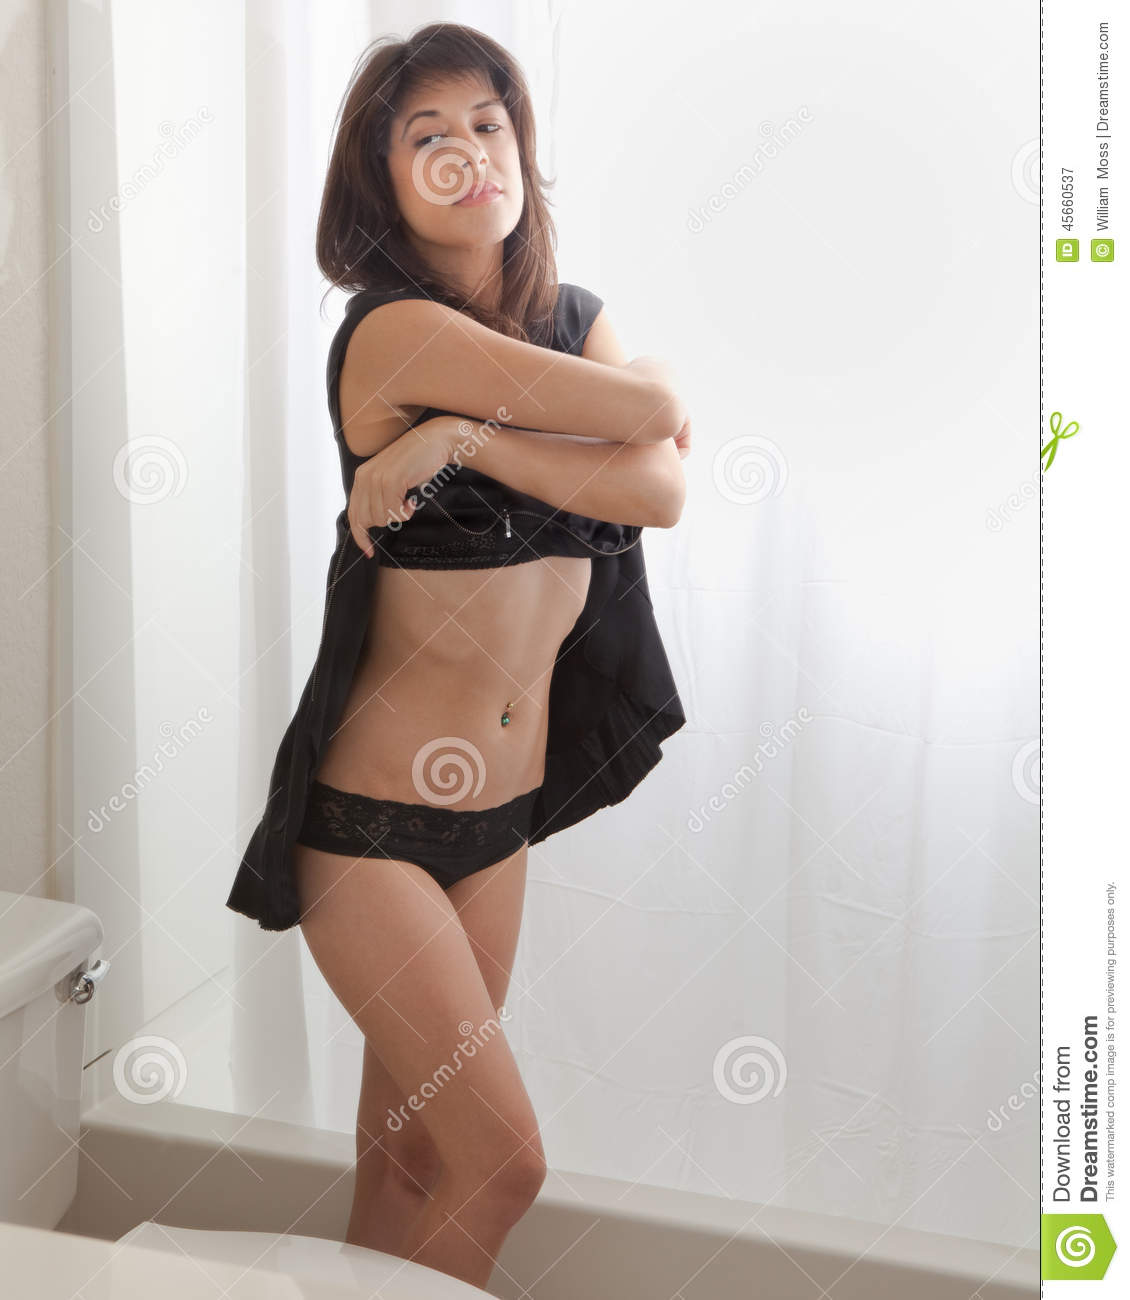 Woman Undressing In Bathroom Stock Photo - Image: 45660537